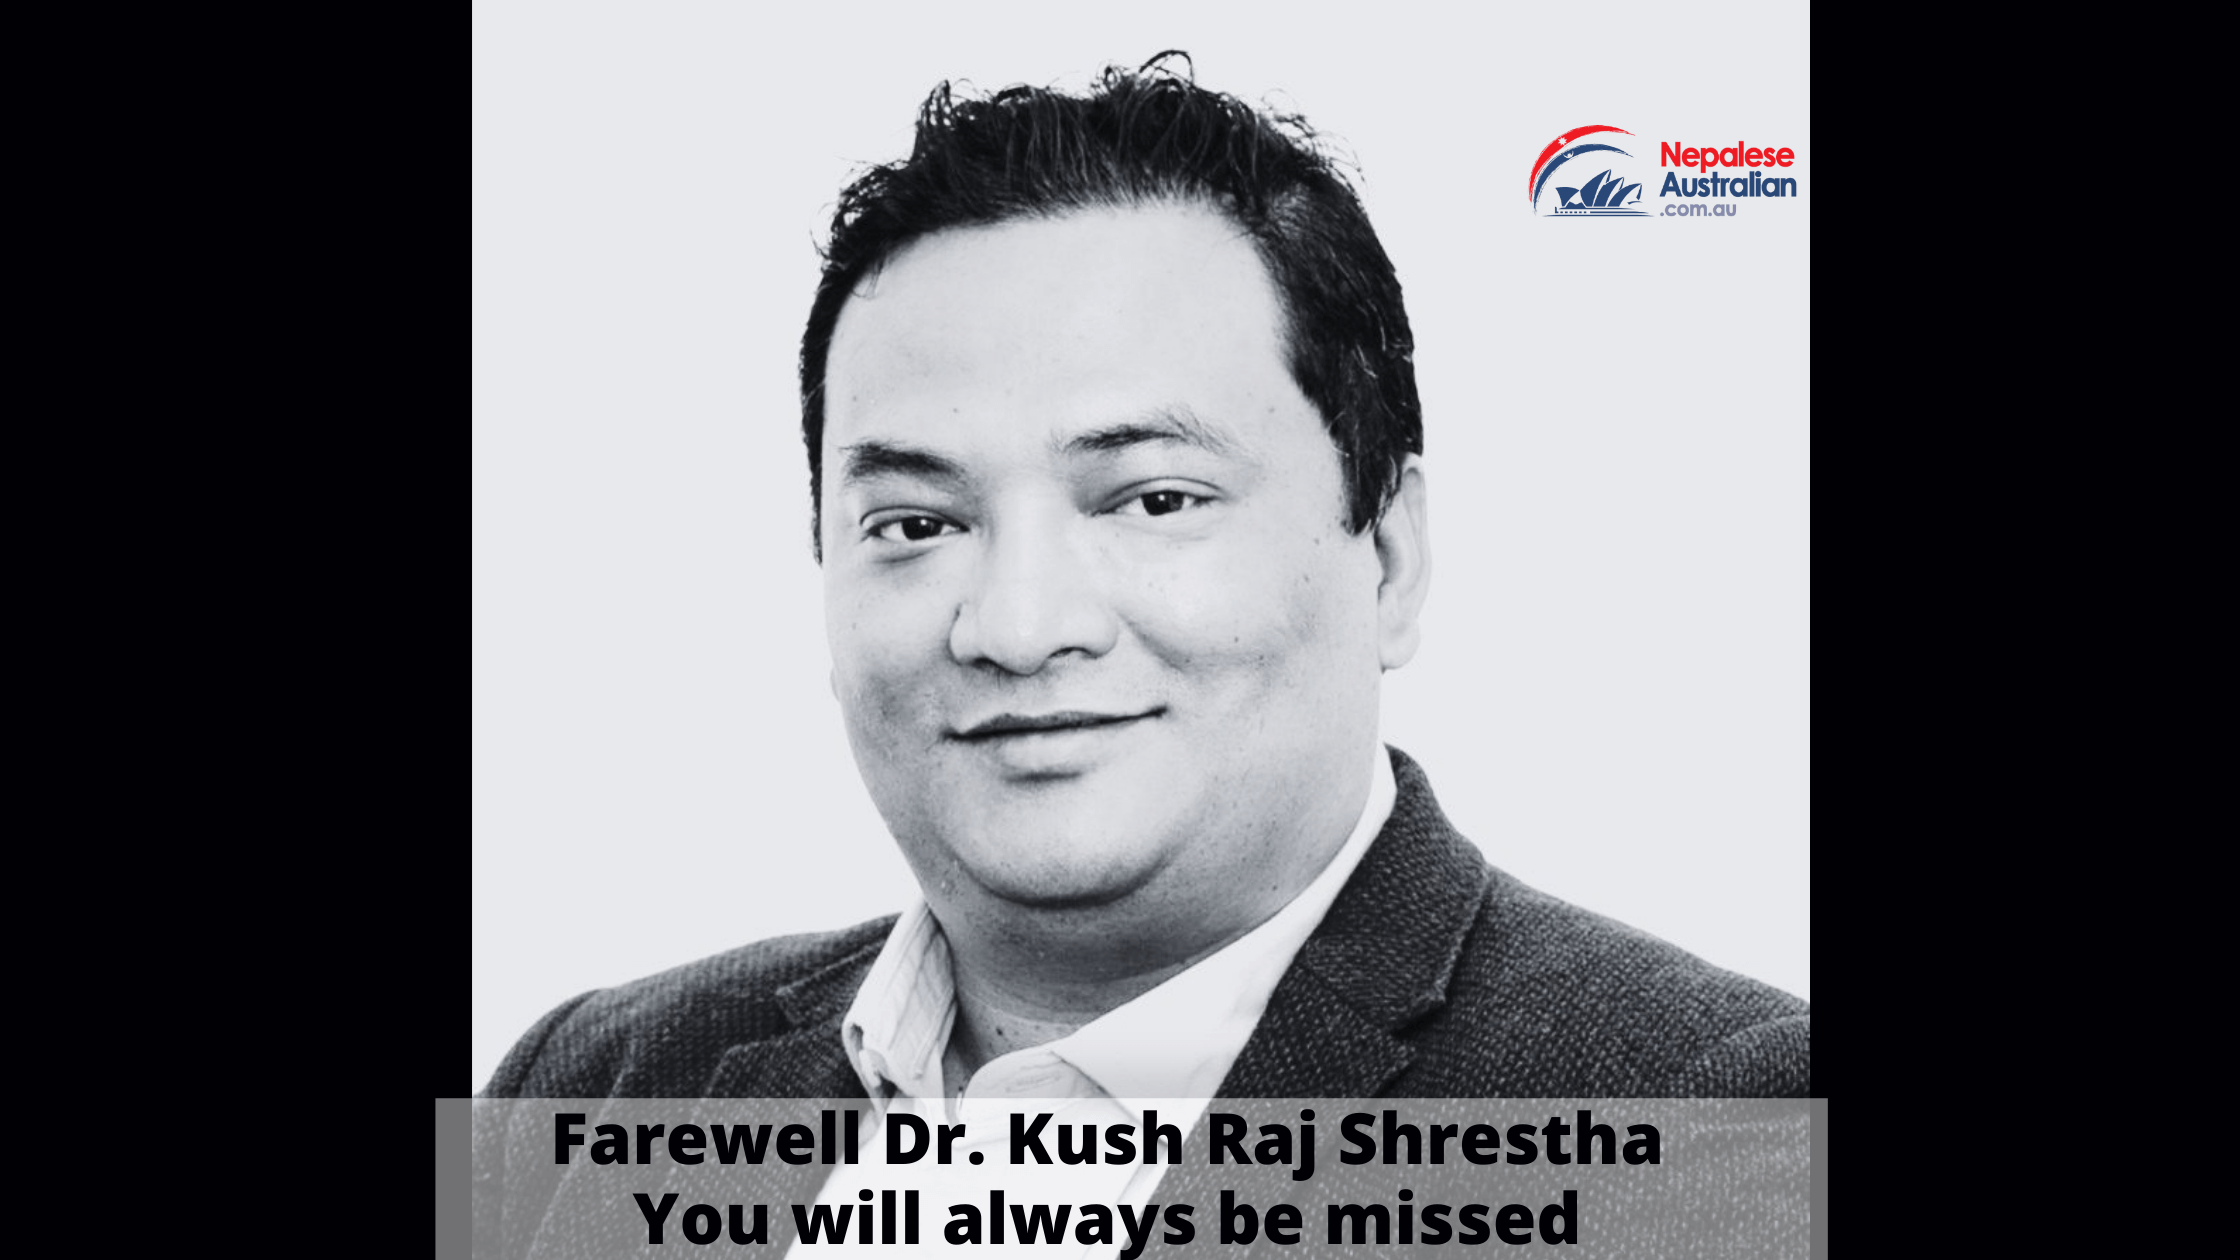 Dr. Kush Raj Shrestha passed away on Saturday evening on the 11th of September in Adelaide